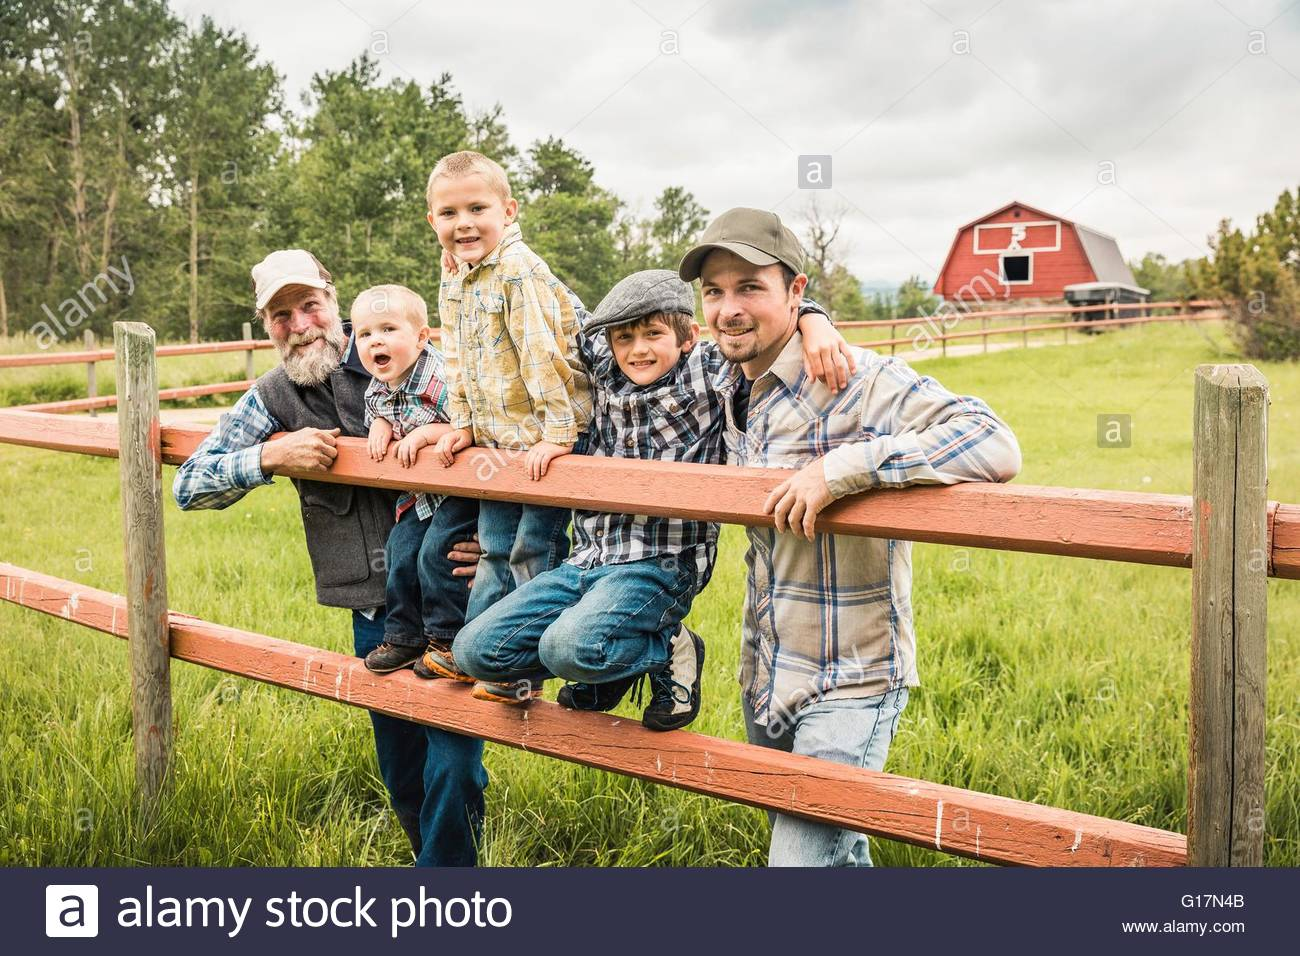 Multi generation family standing behind fence on farm looking at camera smiling - Stock Image